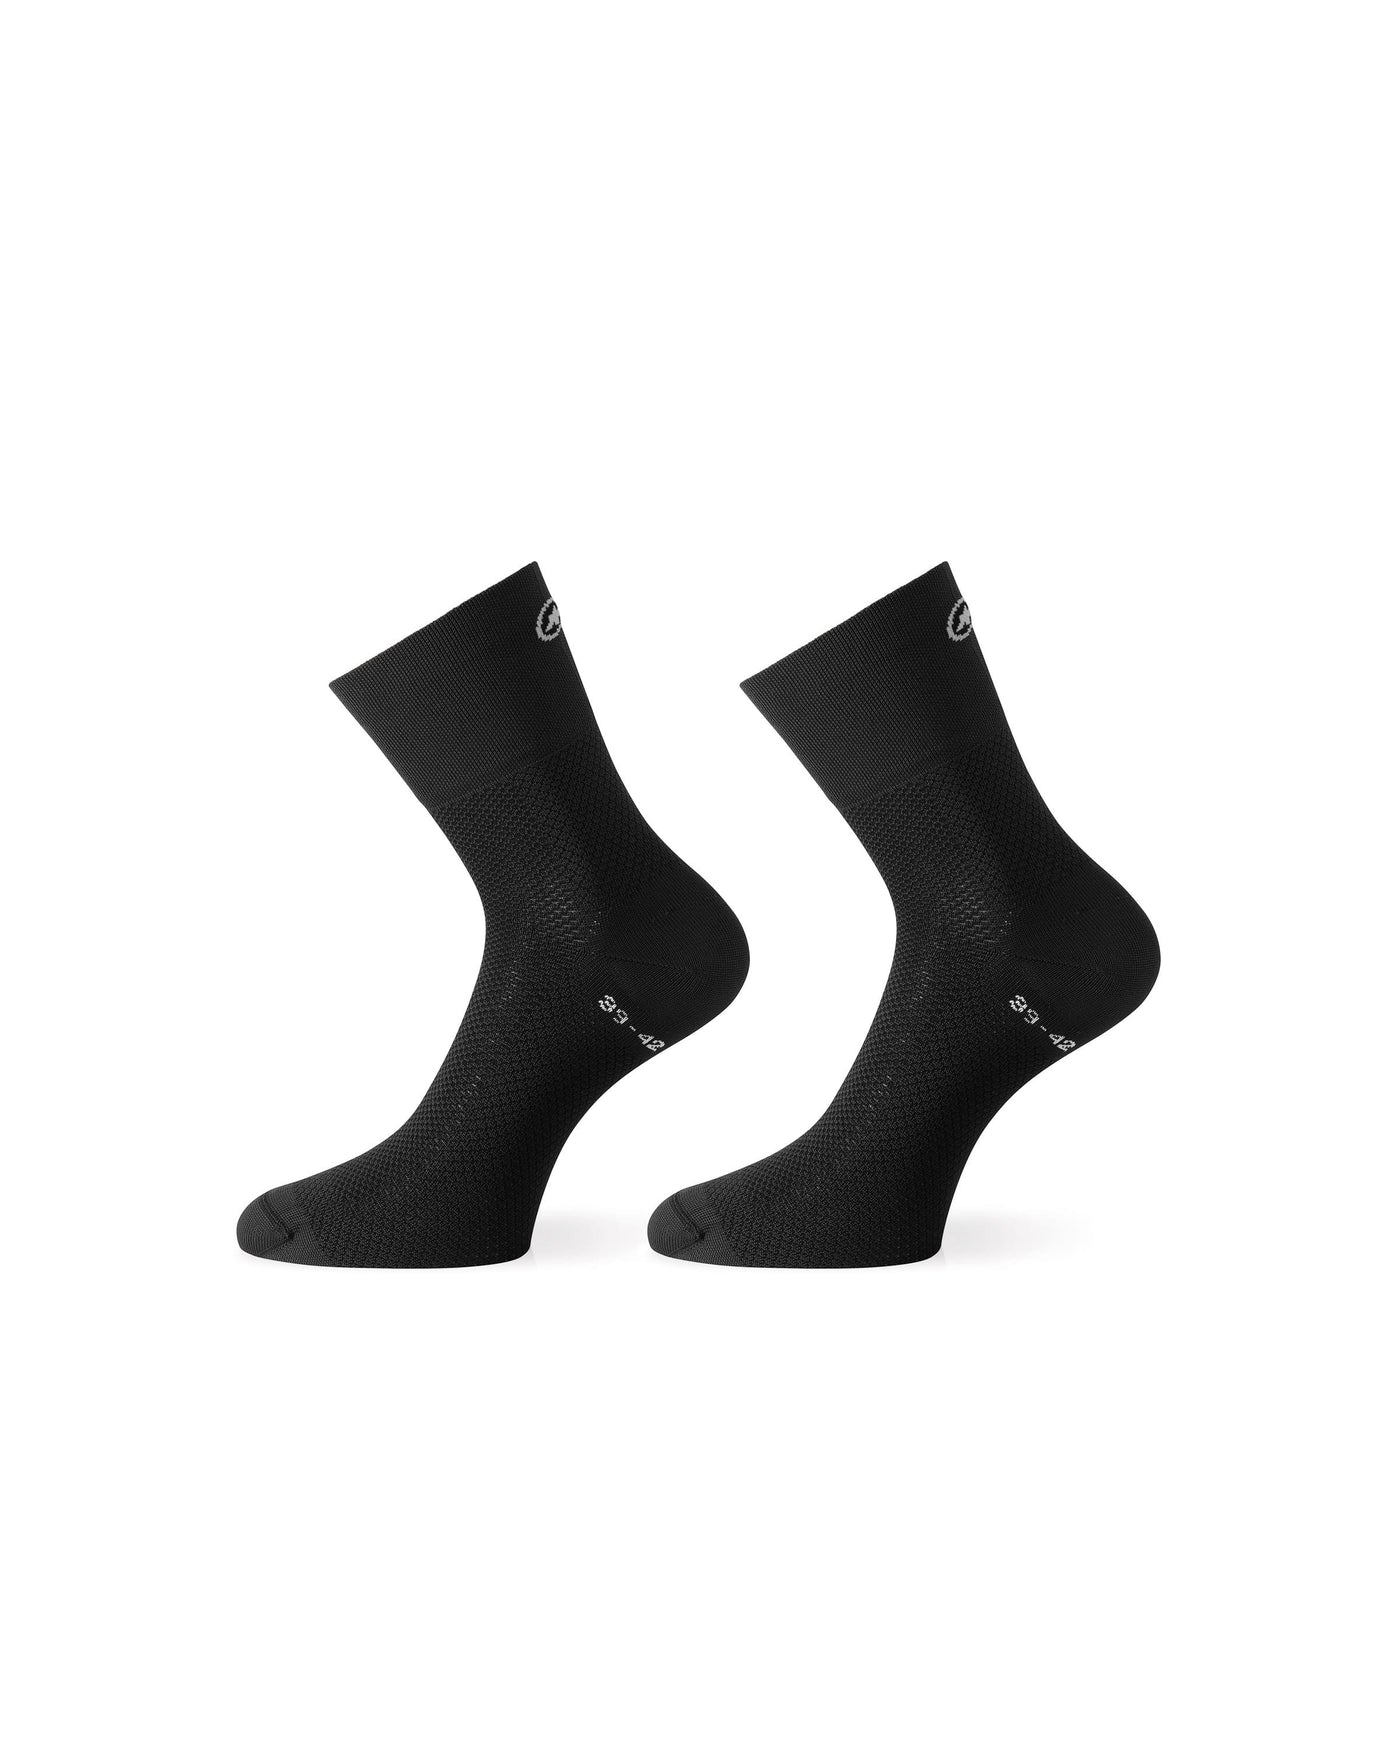 Assos ASSOSOIRES GT Socks blackSeries